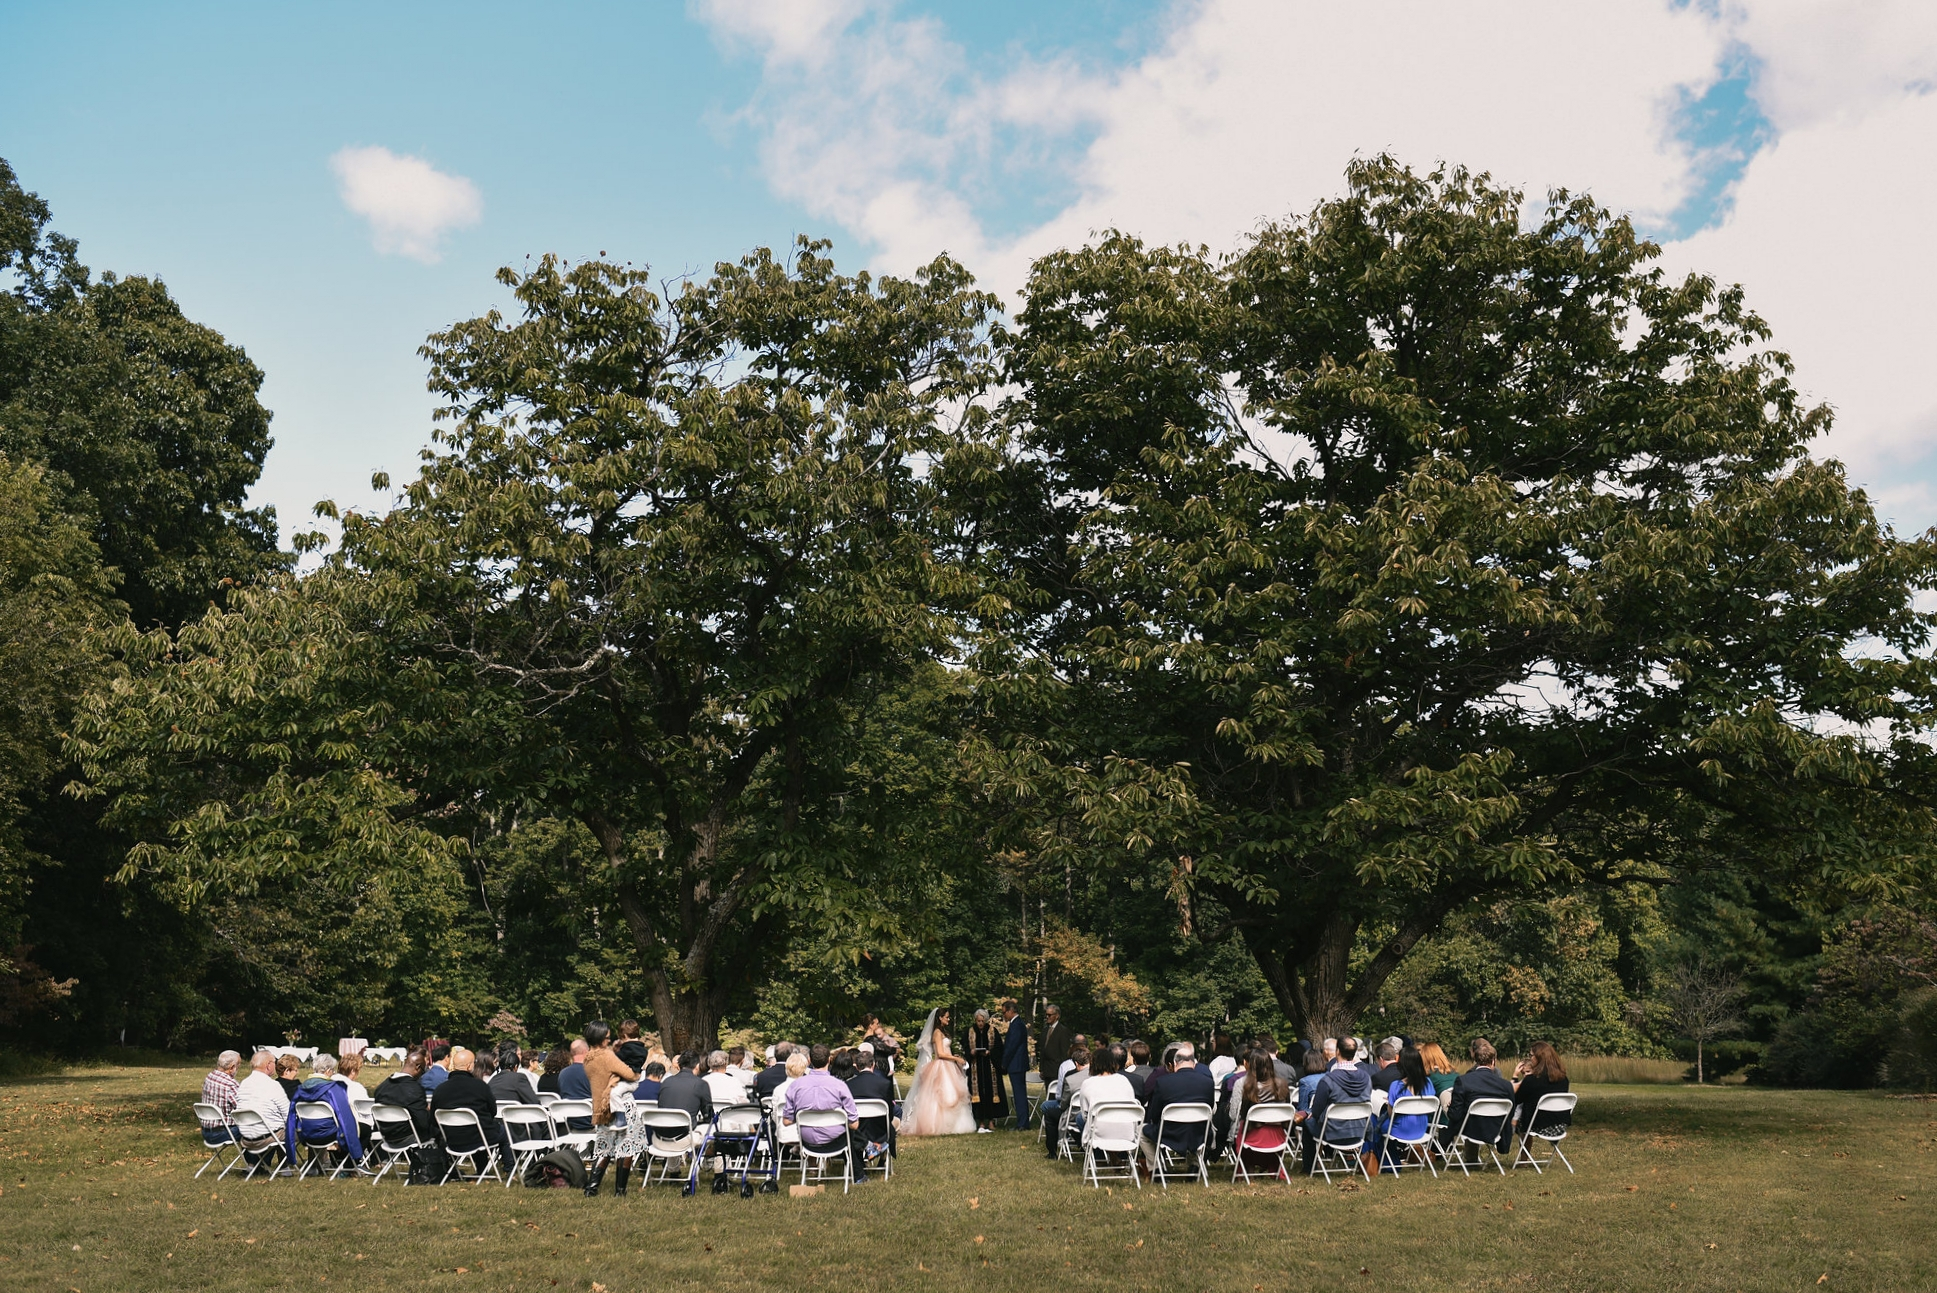 Vintage, DIY, Rustic, Exchanging Vows, Germantown, Baltimore Wedding Photographer, Alternative, Casual, Outdoor Wedding, Church Wedding, Whimsical, Campground, Outdoor Wedding Ceremony, Wedding Guests